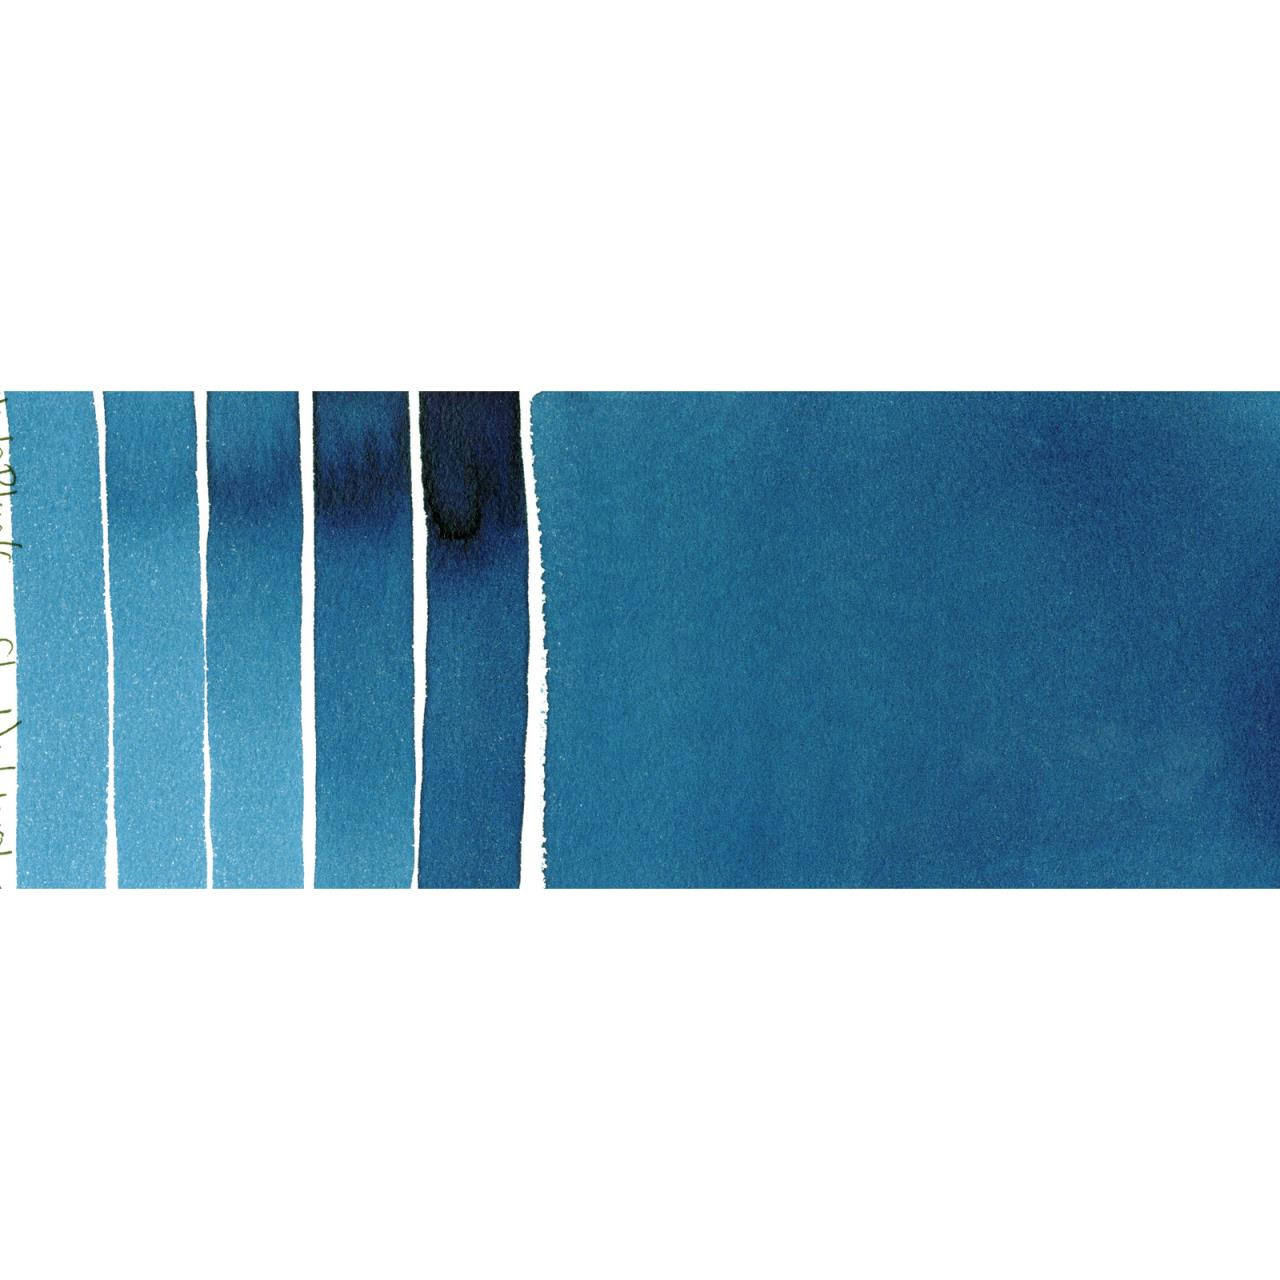 Phthalo Blue - Green Shade, DANIEL SMITH Extra Fine Watercolors 5ml Tubes -